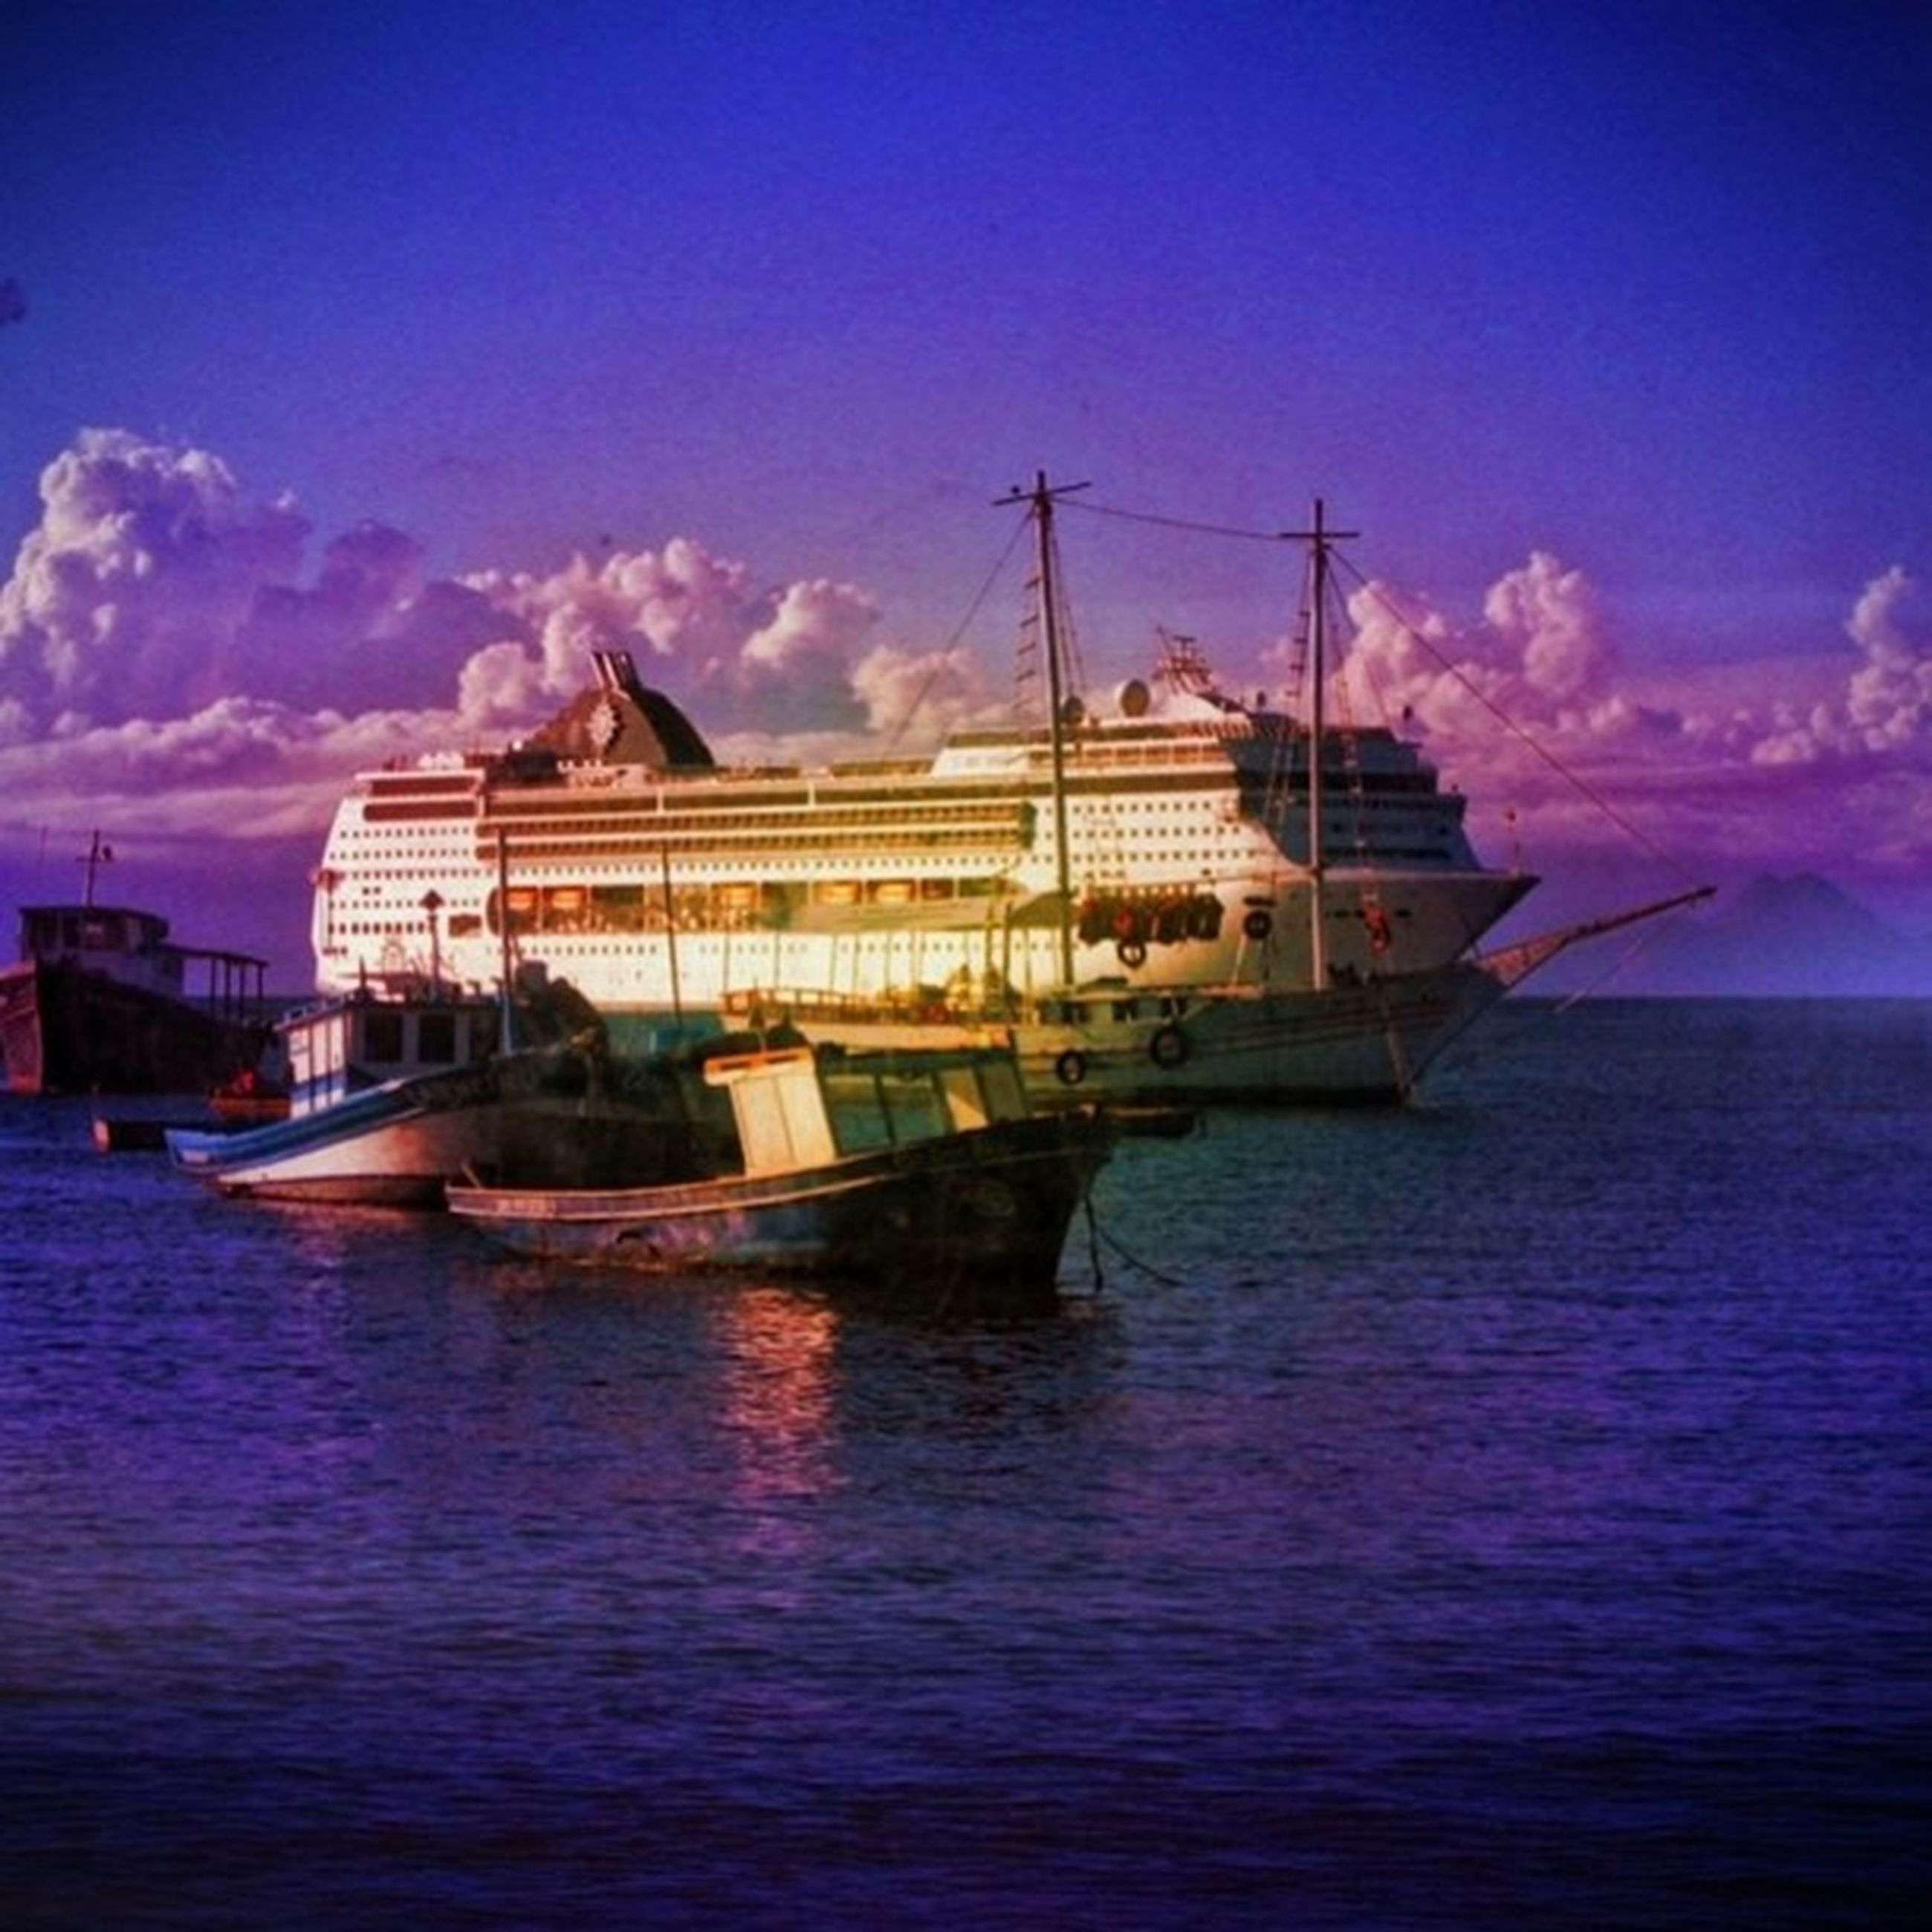 water, waterfront, sky, nautical vessel, sea, boat, transportation, mode of transport, cloud - sky, moored, blue, sunset, built structure, building exterior, cloud, rippled, architecture, nature, reflection, beauty in nature